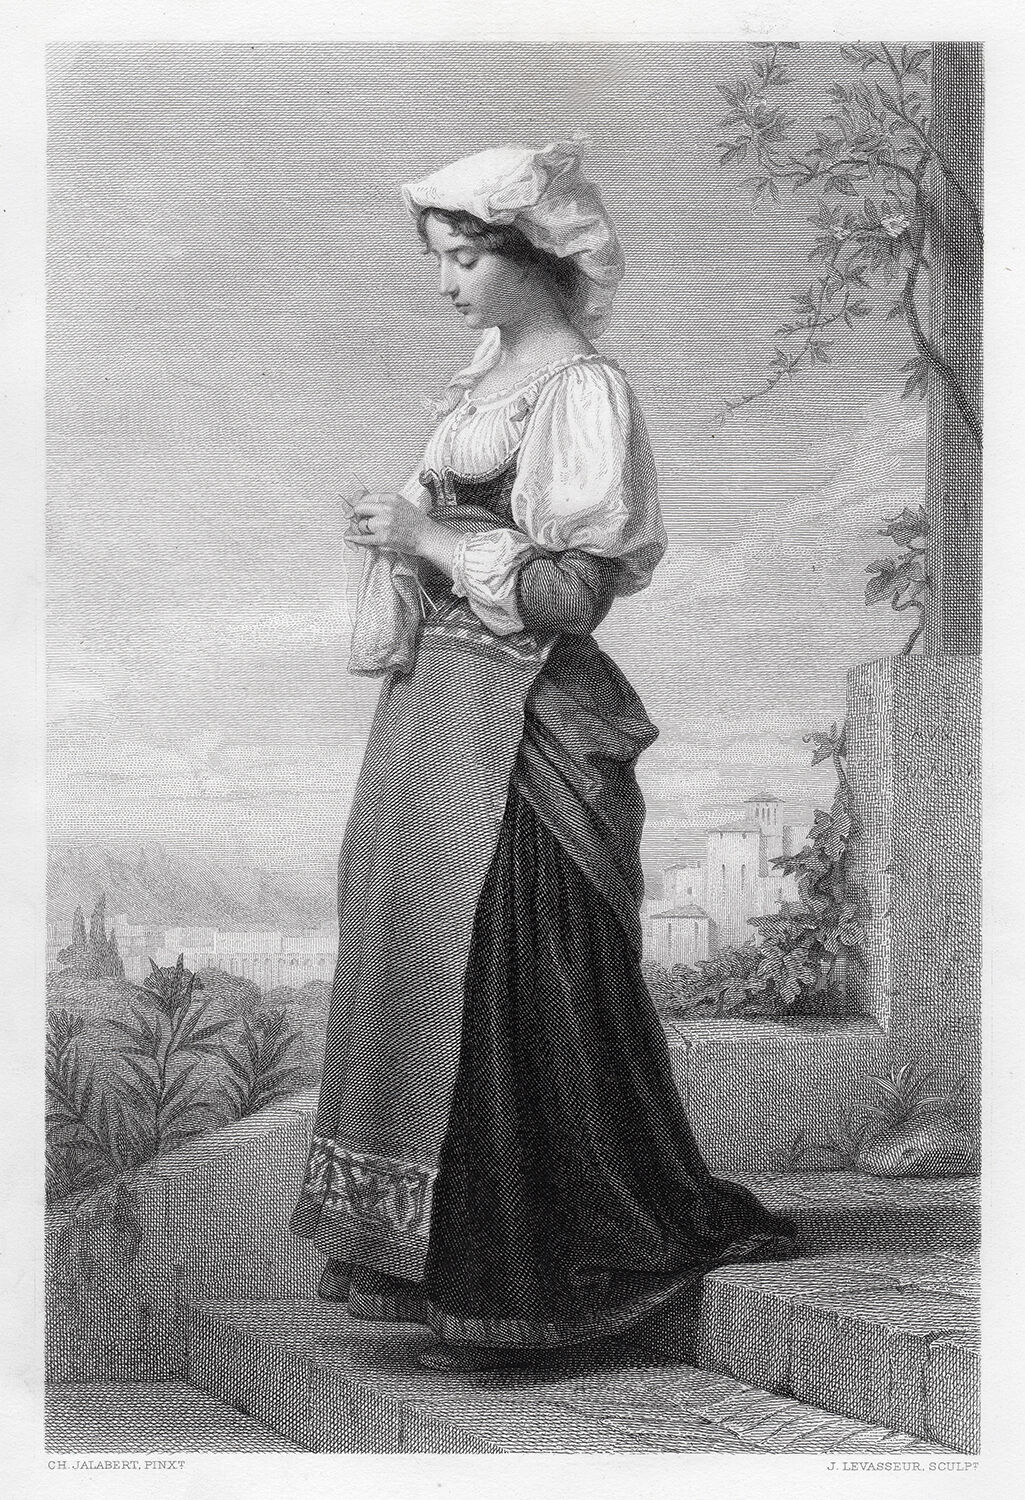 Amazing 1800s Charles JALABERT Engraving Young Girl Knitting SIGNED Framed COA - $229.00